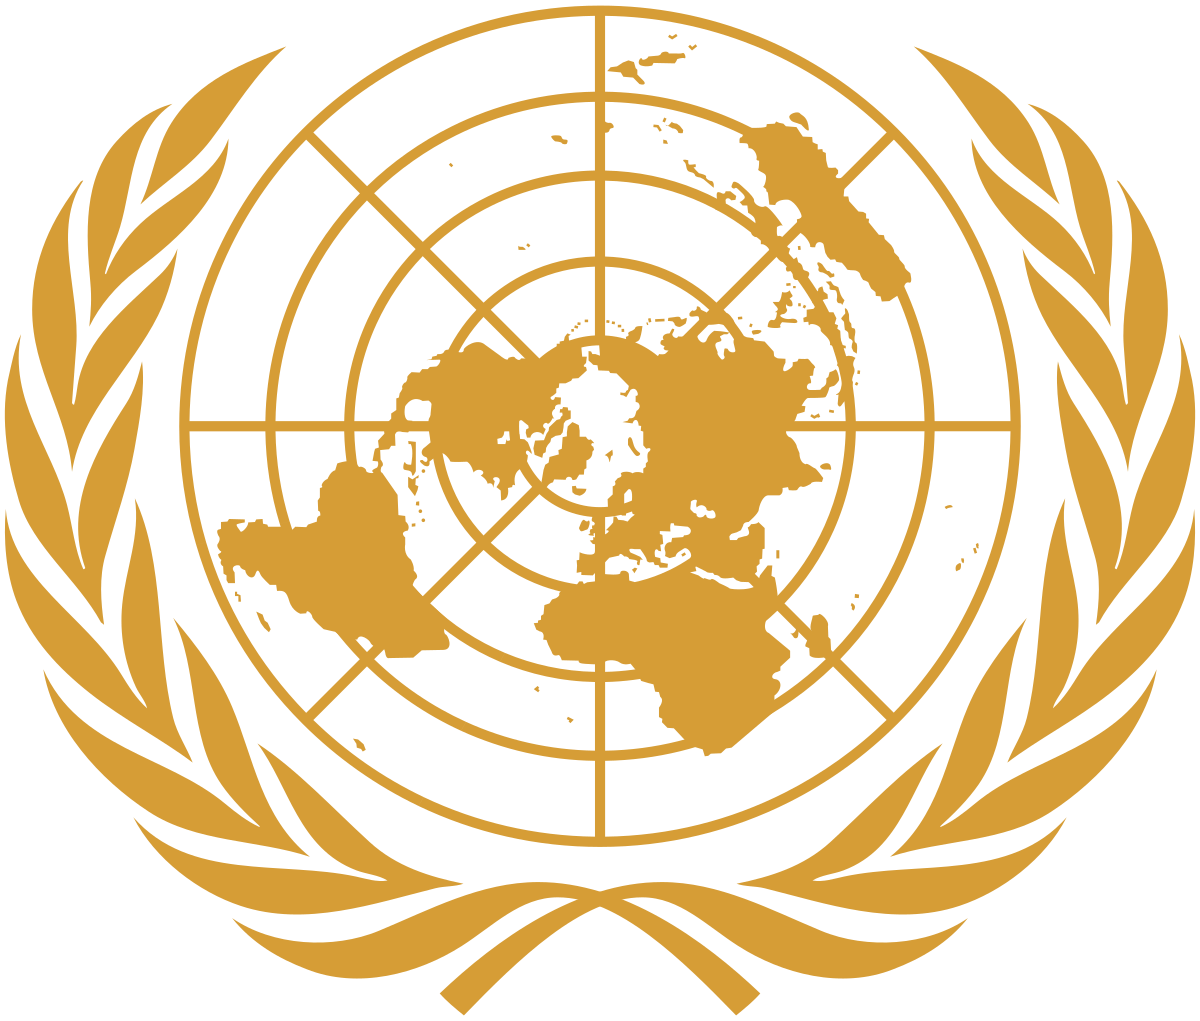 UNSC to hold its first meeting on Covid-19 outbreak on April 9